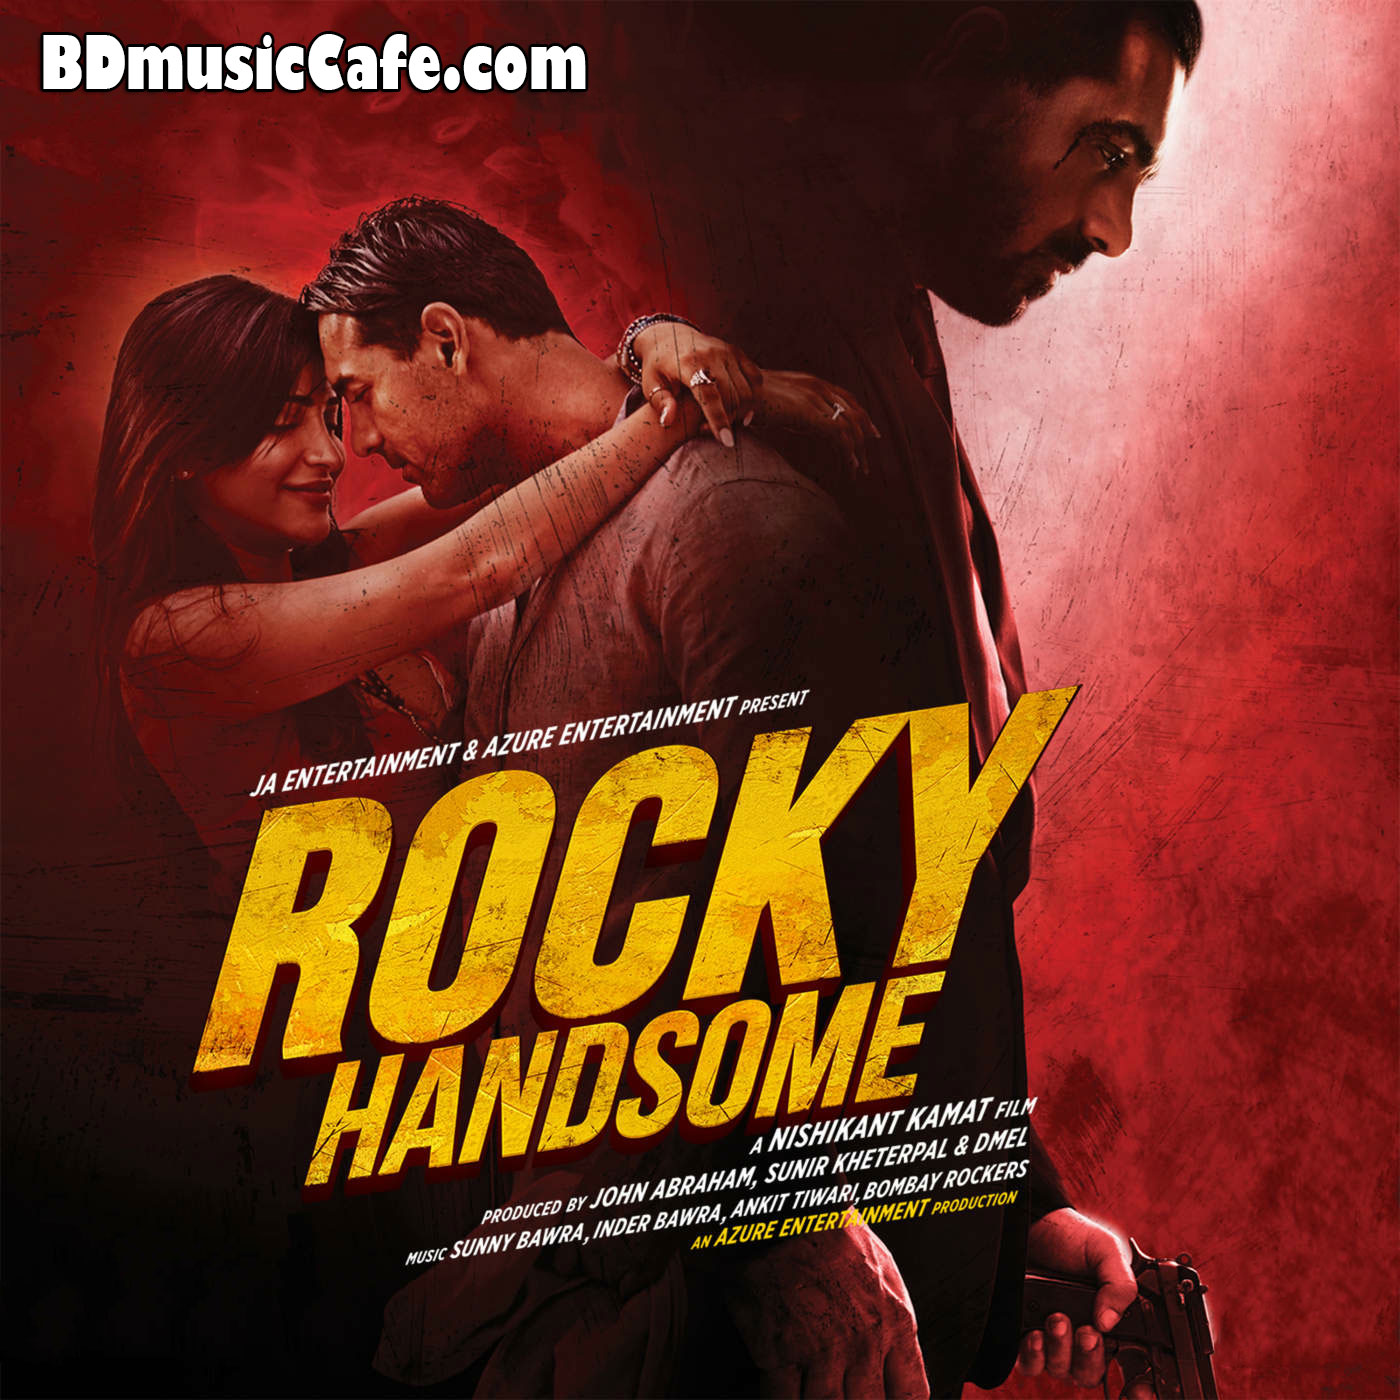 Rocky handsome 2016 bollywood movie mp3 songs download All songs hd video 2016